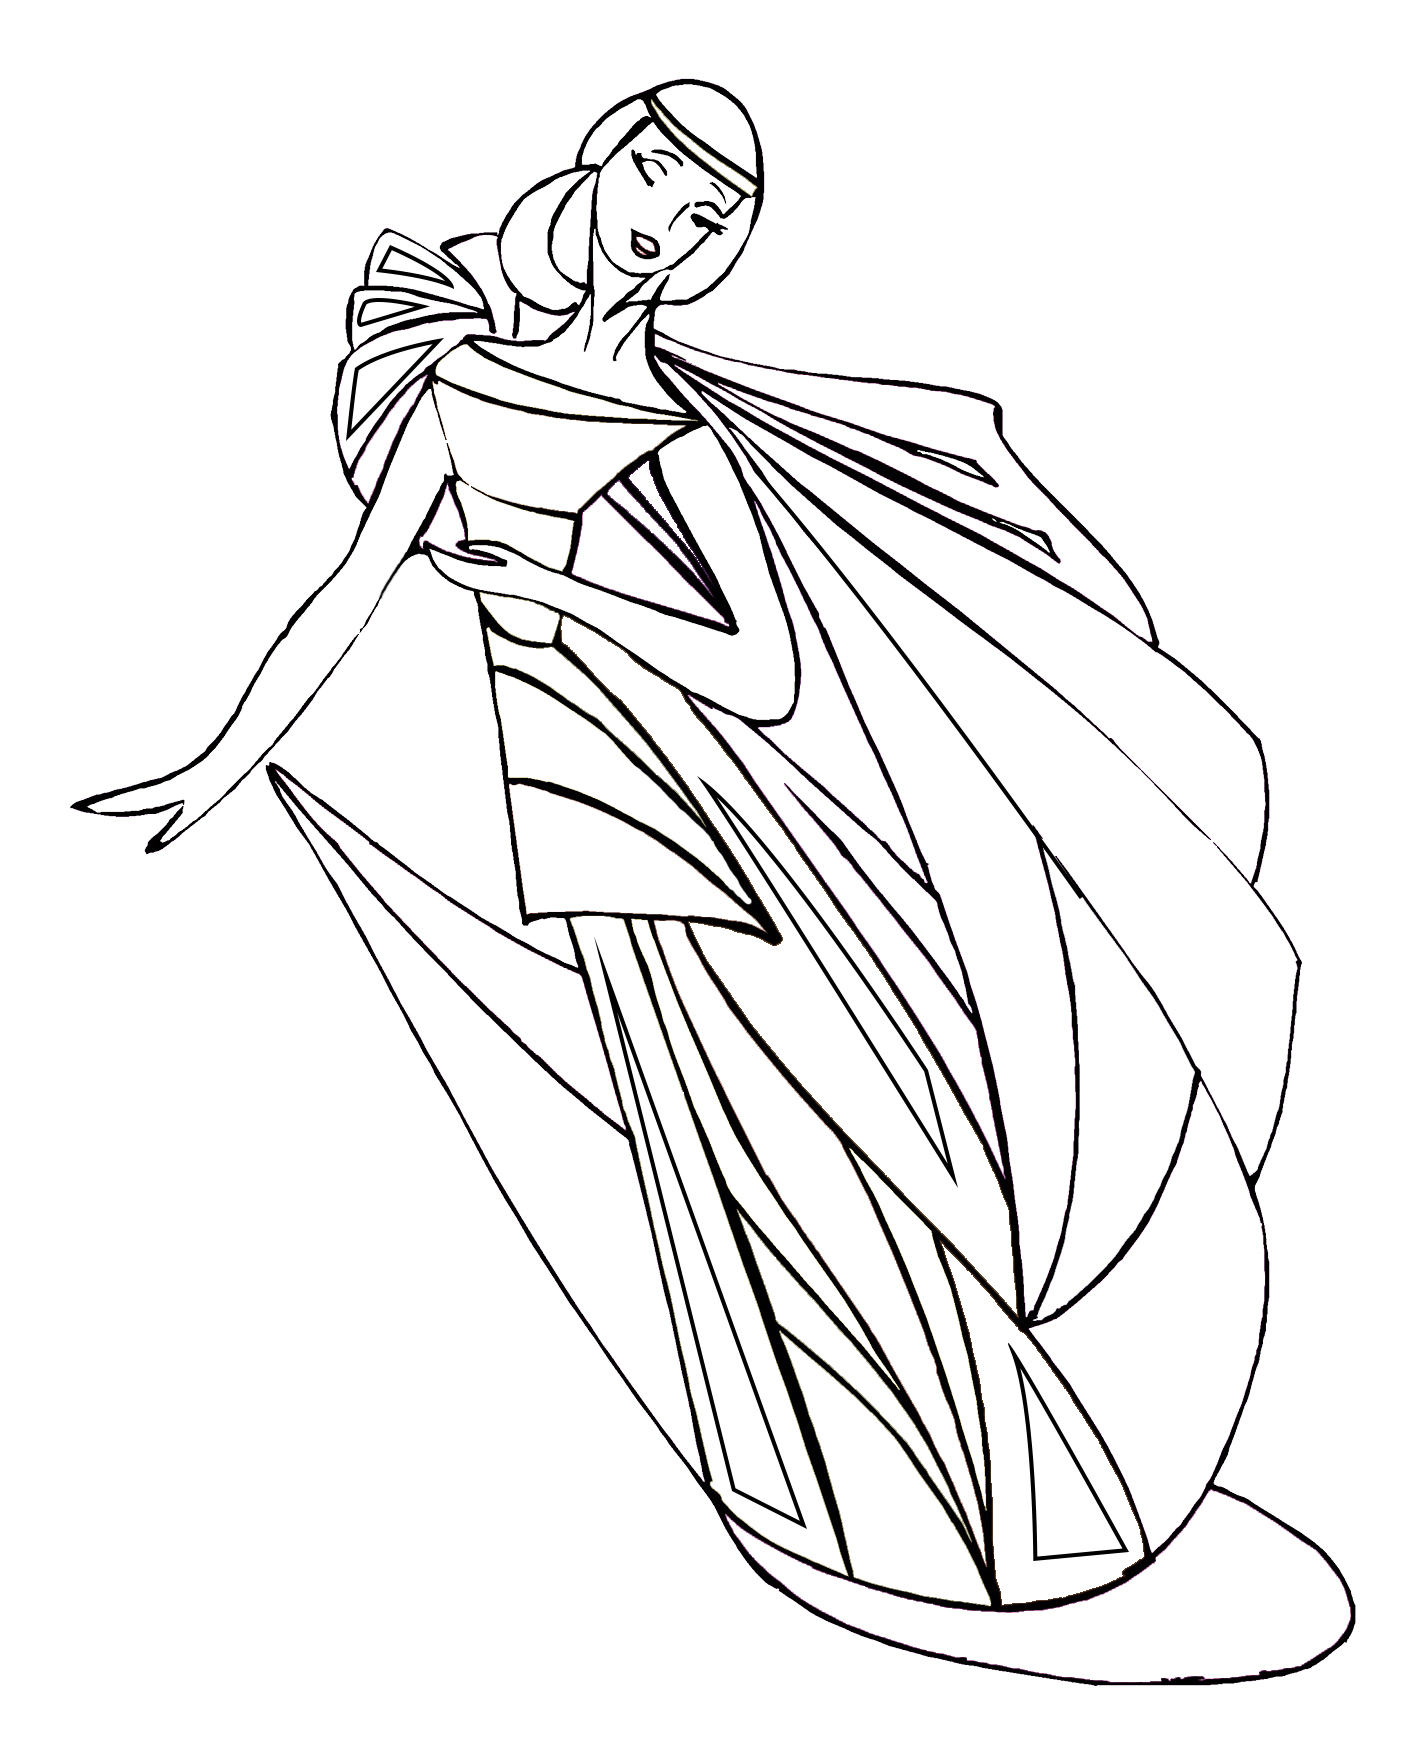 Coloring sheet with dancer